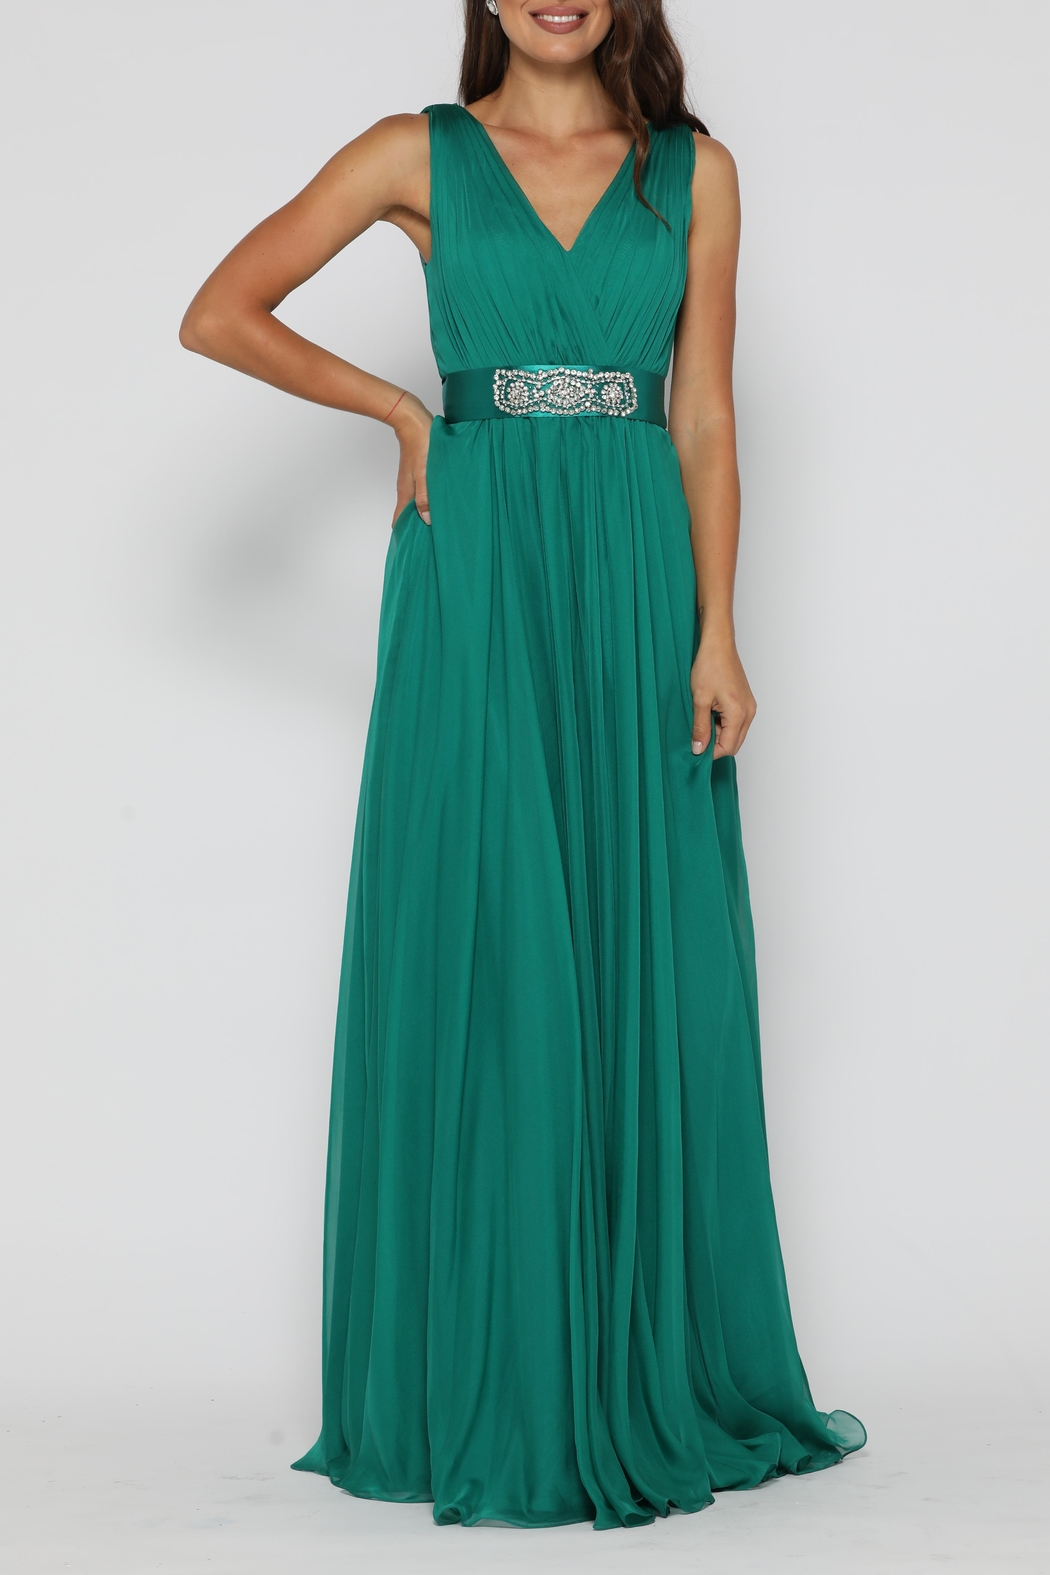 86b101093a Jadore Miss Madeline Emerald from Sydney by Windsor and Lux — Shoptiques